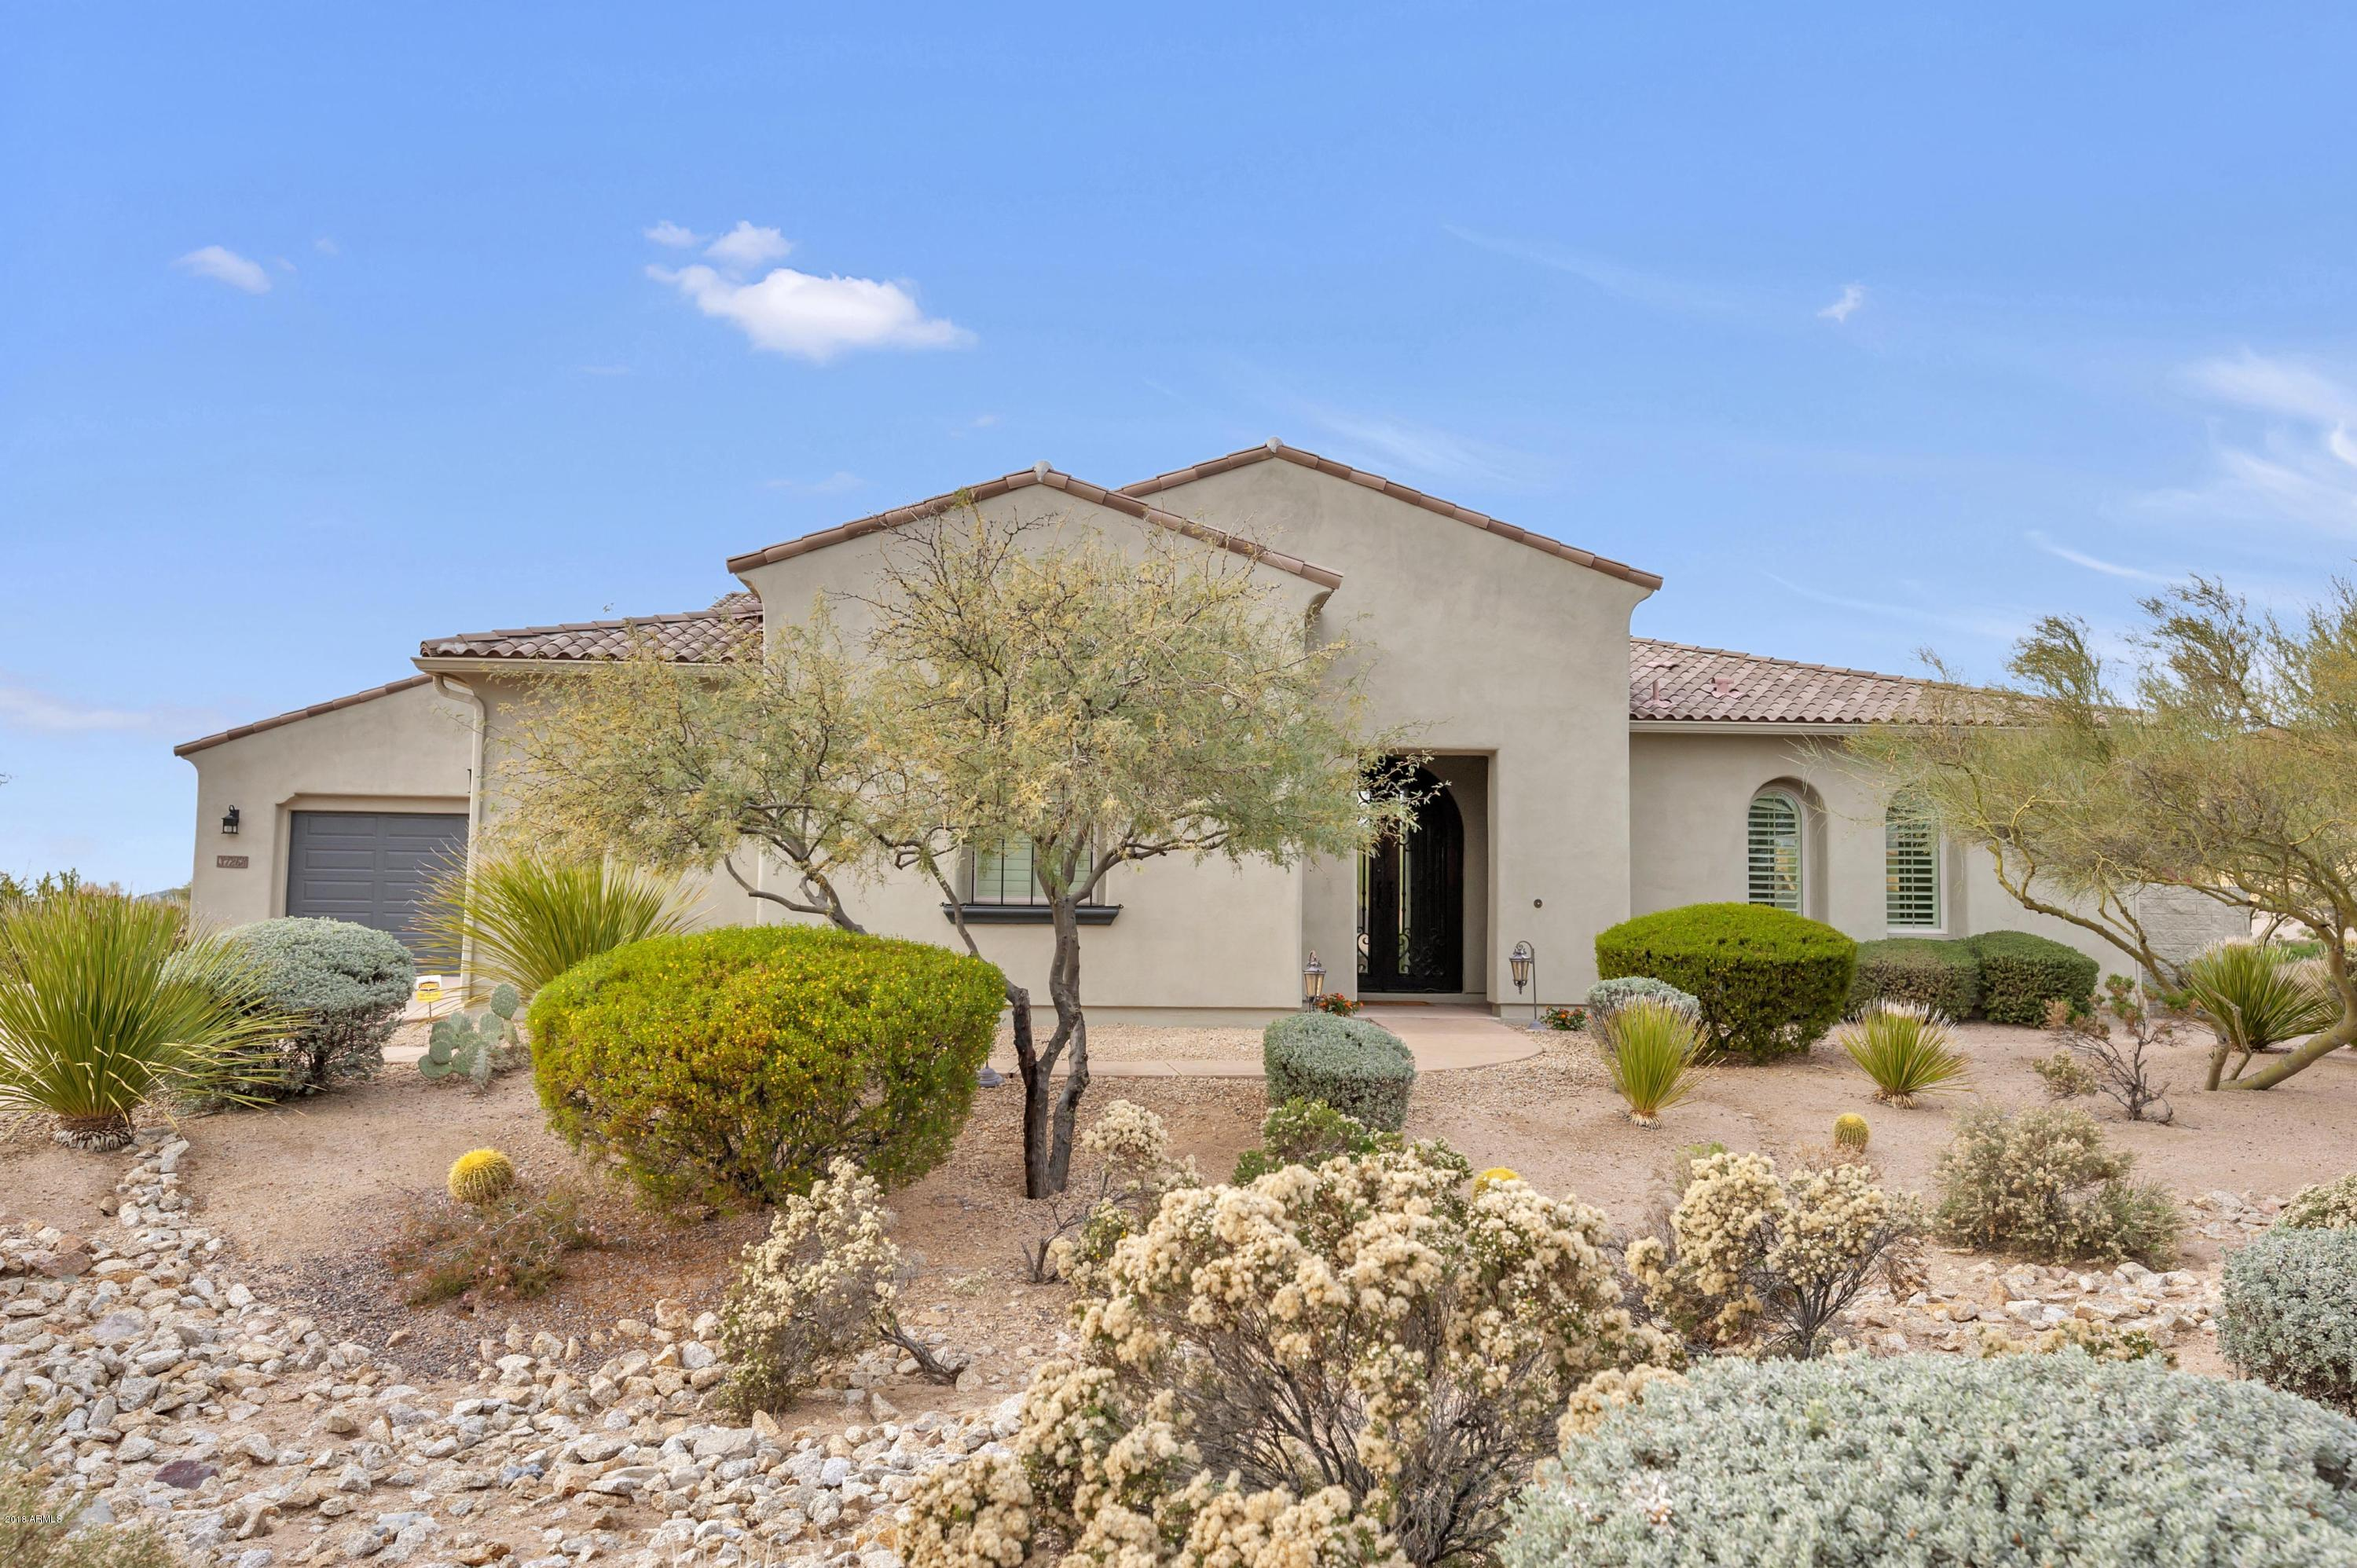 Photo of 37268 N 110TH Street, Scottsdale, AZ 85262